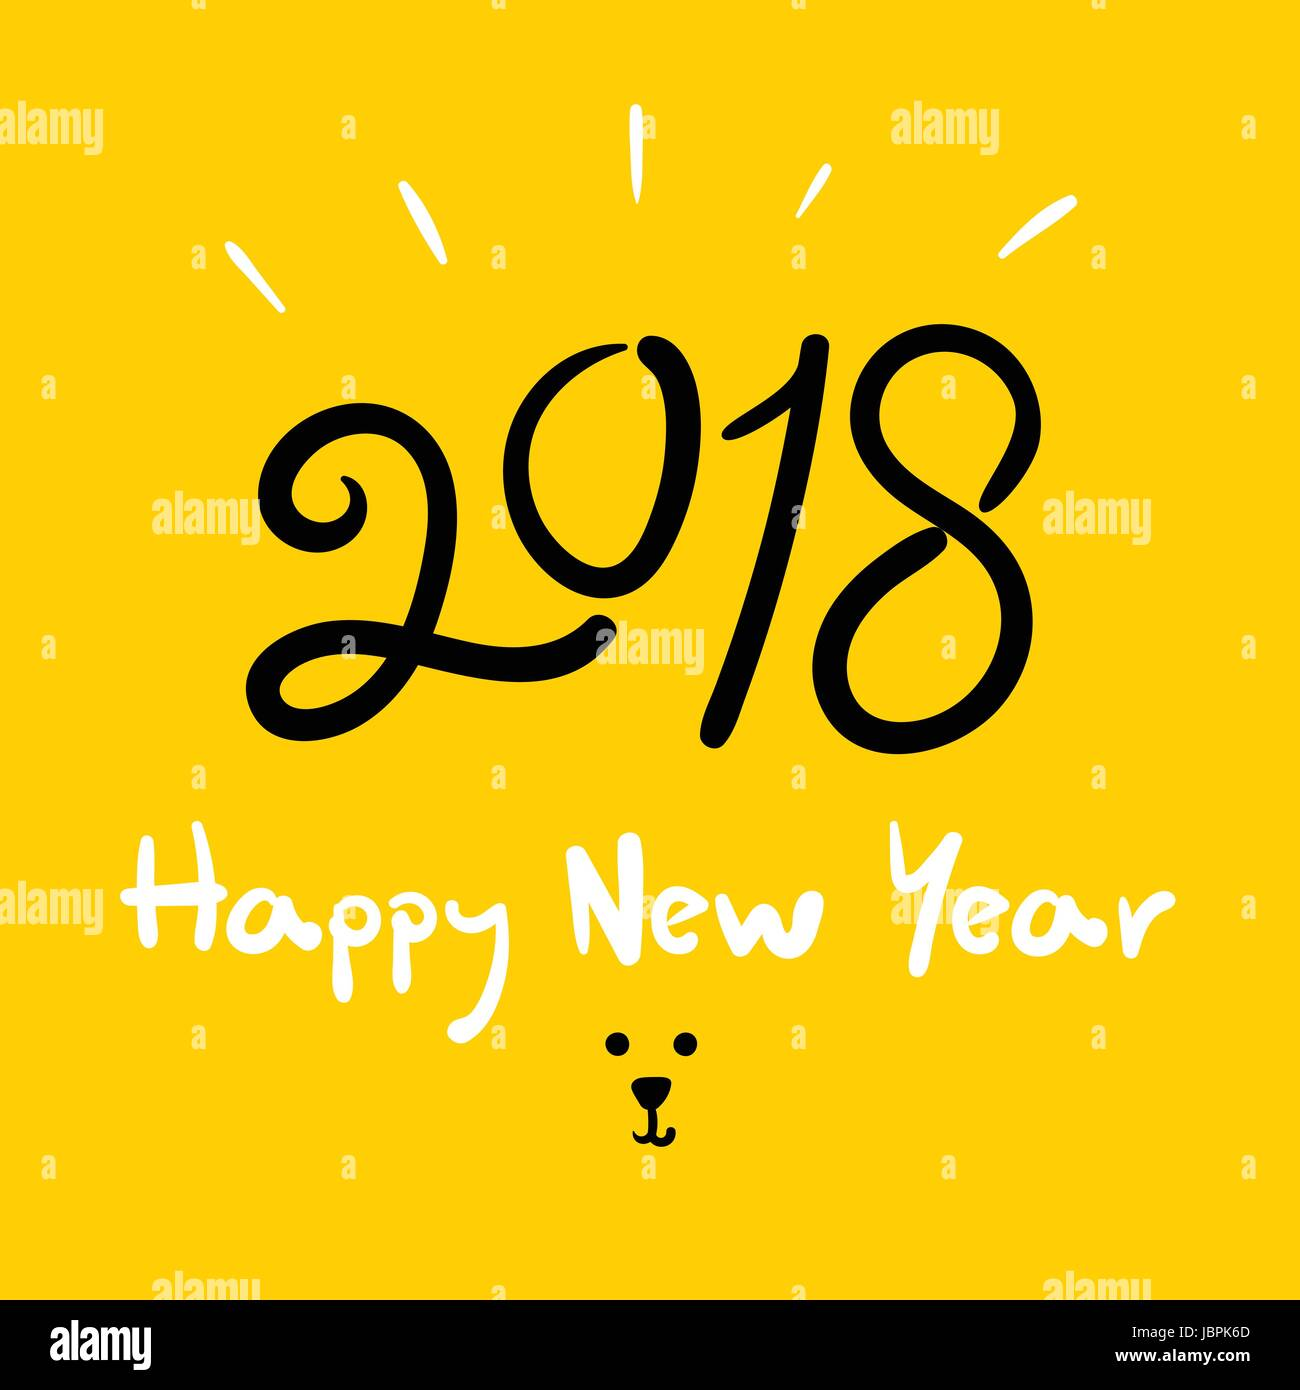 happy new year 2018 dog year doodle handwriting brush on bright yellow background holiday greeting card